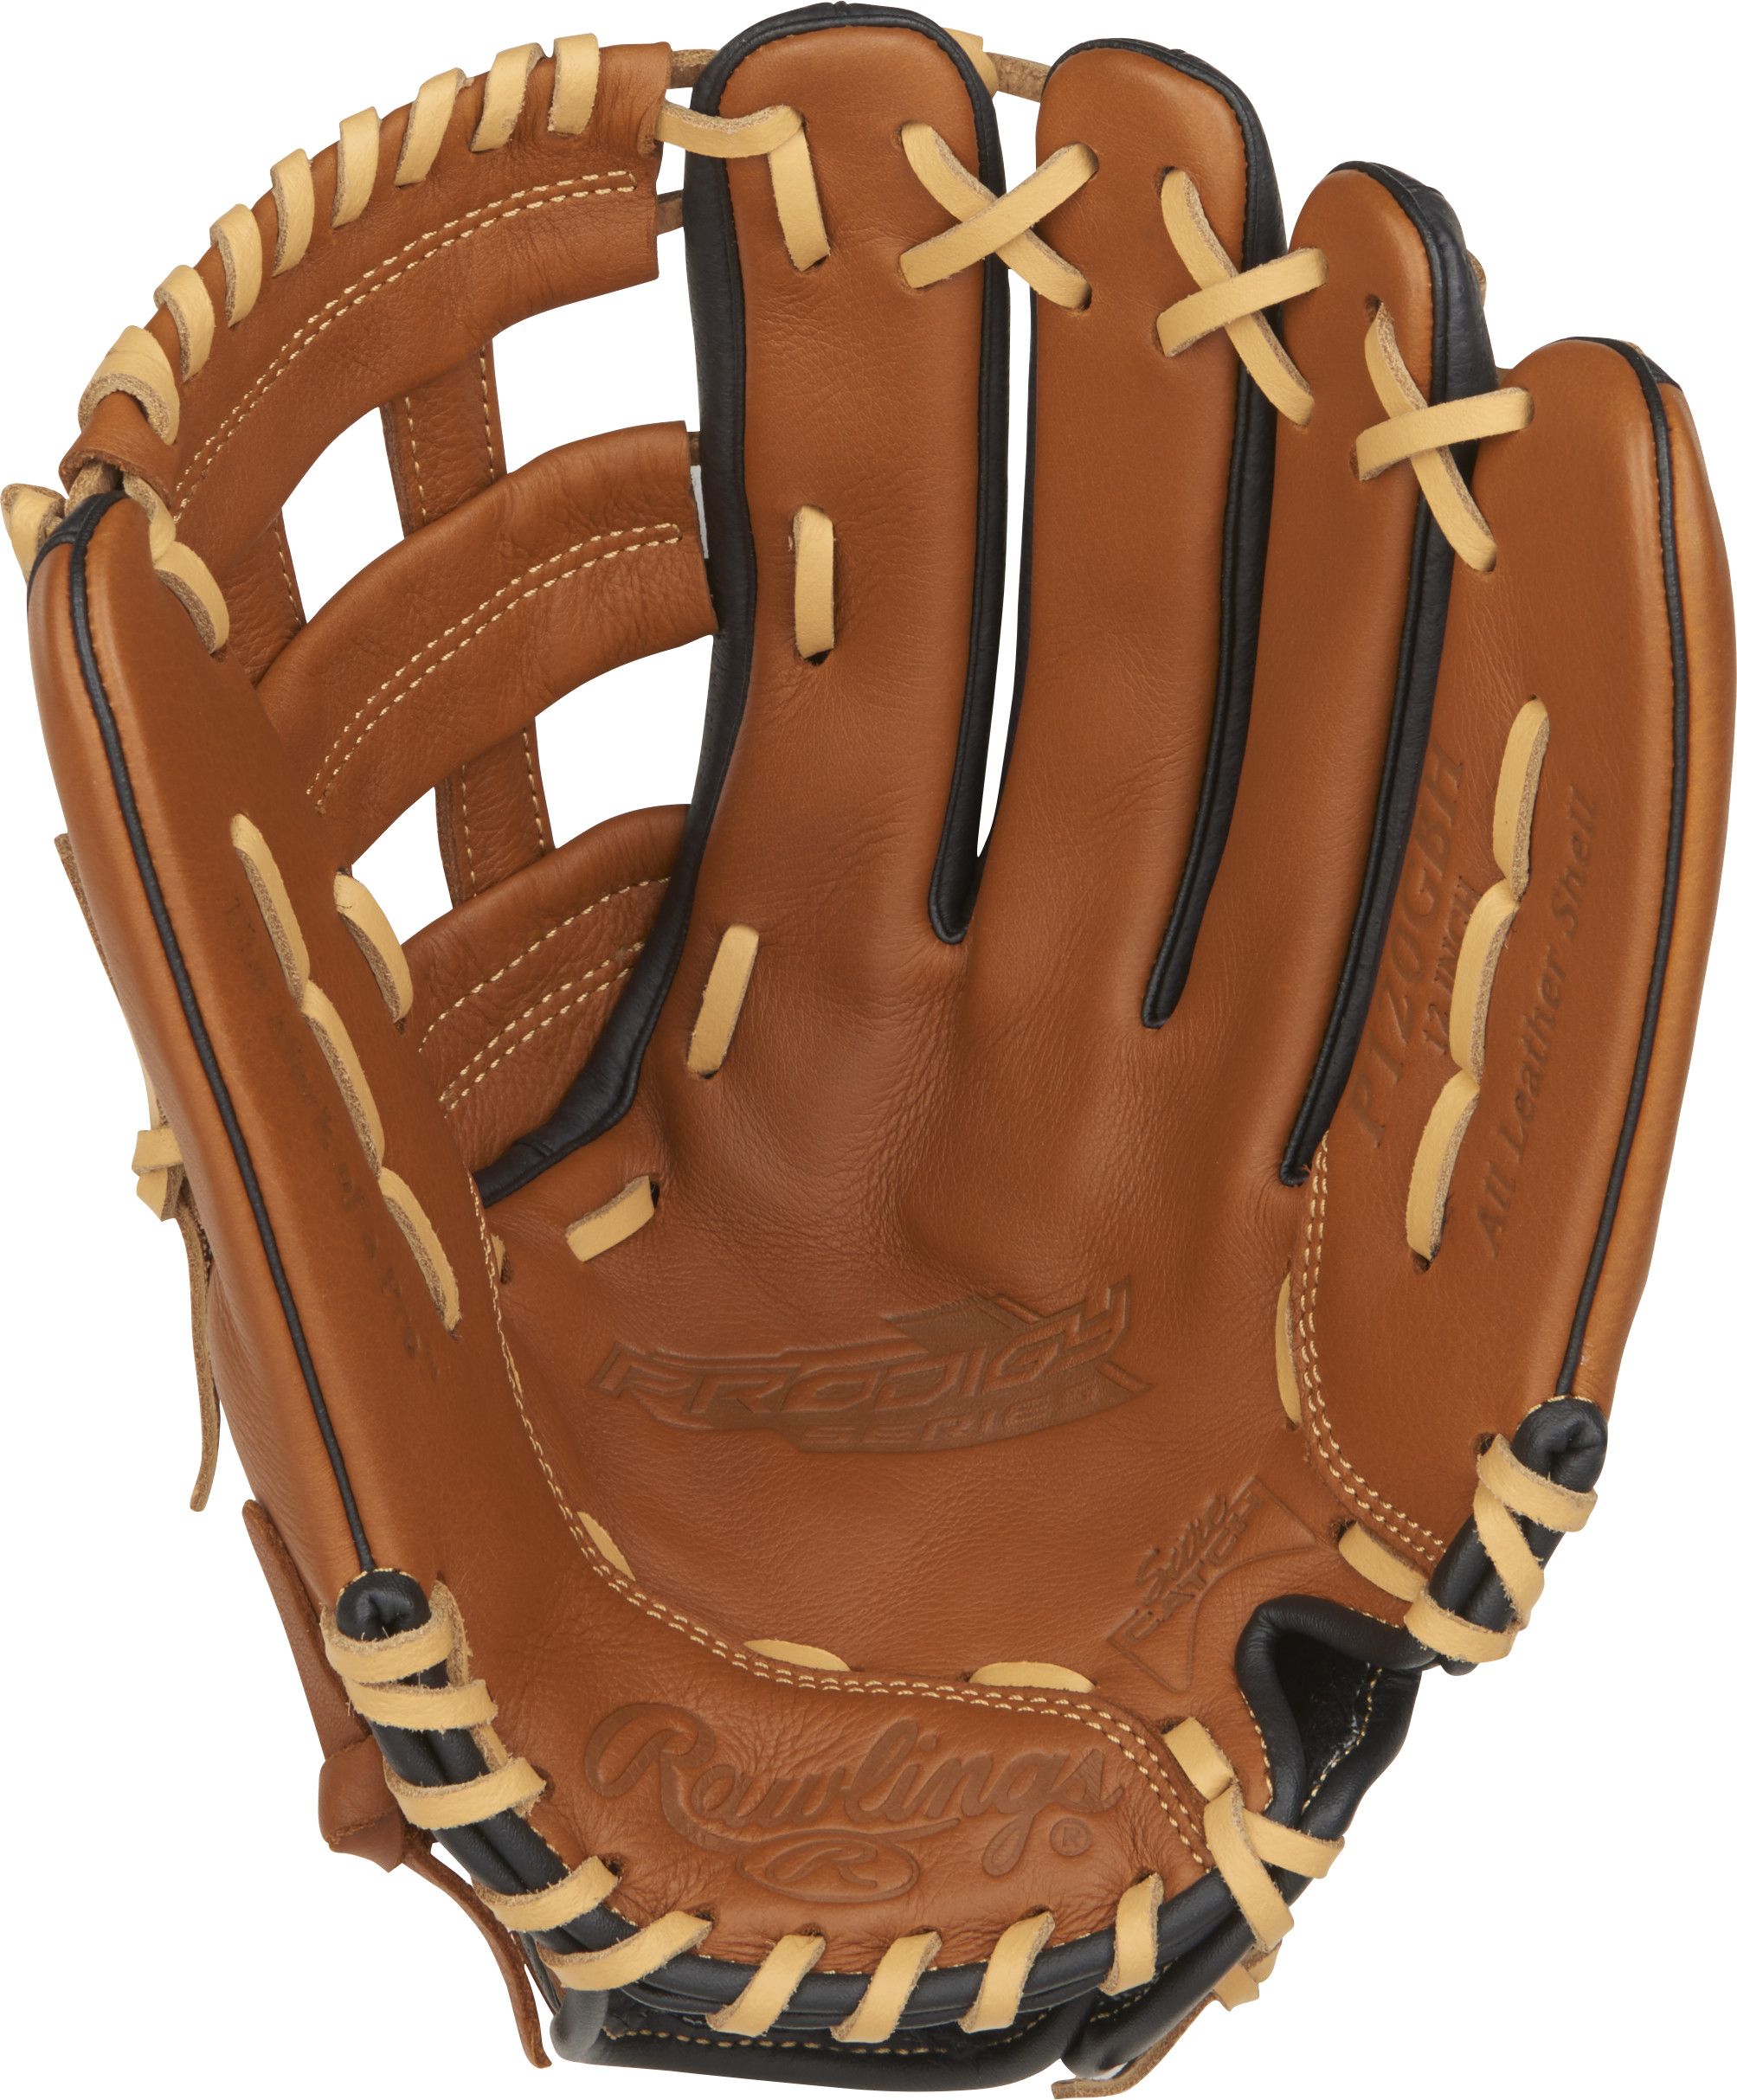 http://www.bestbatdeals.com/images/gloves/rawlings/P120GBH-1.jpg